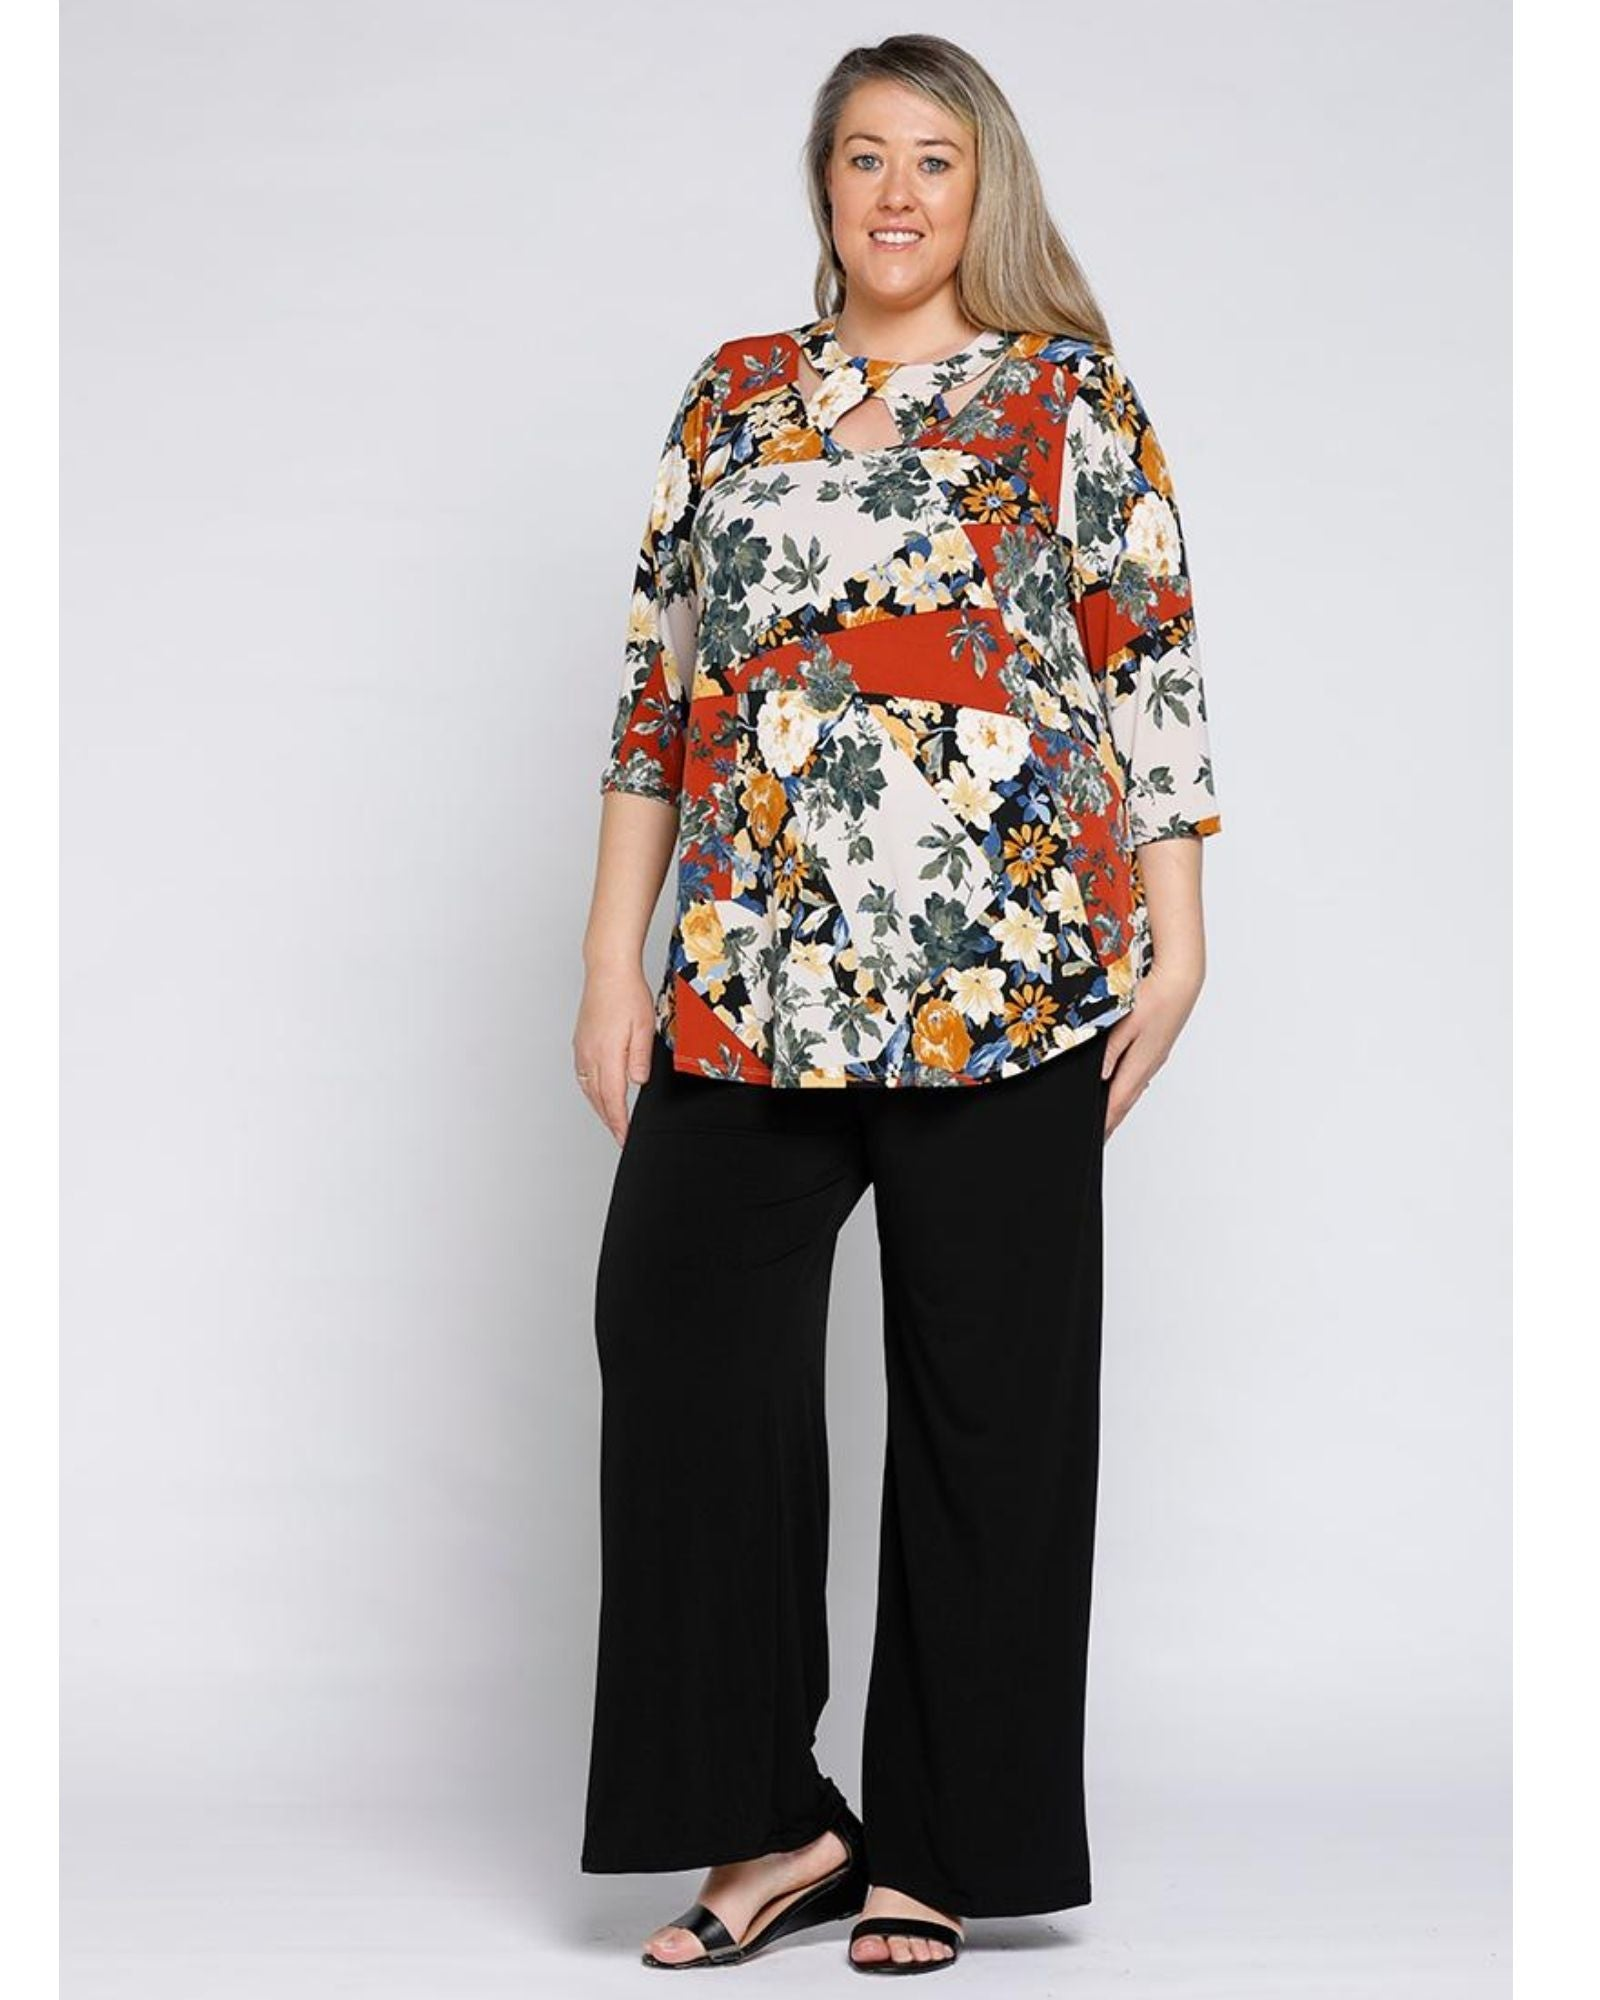 Ally Neck Detail Top - Floral